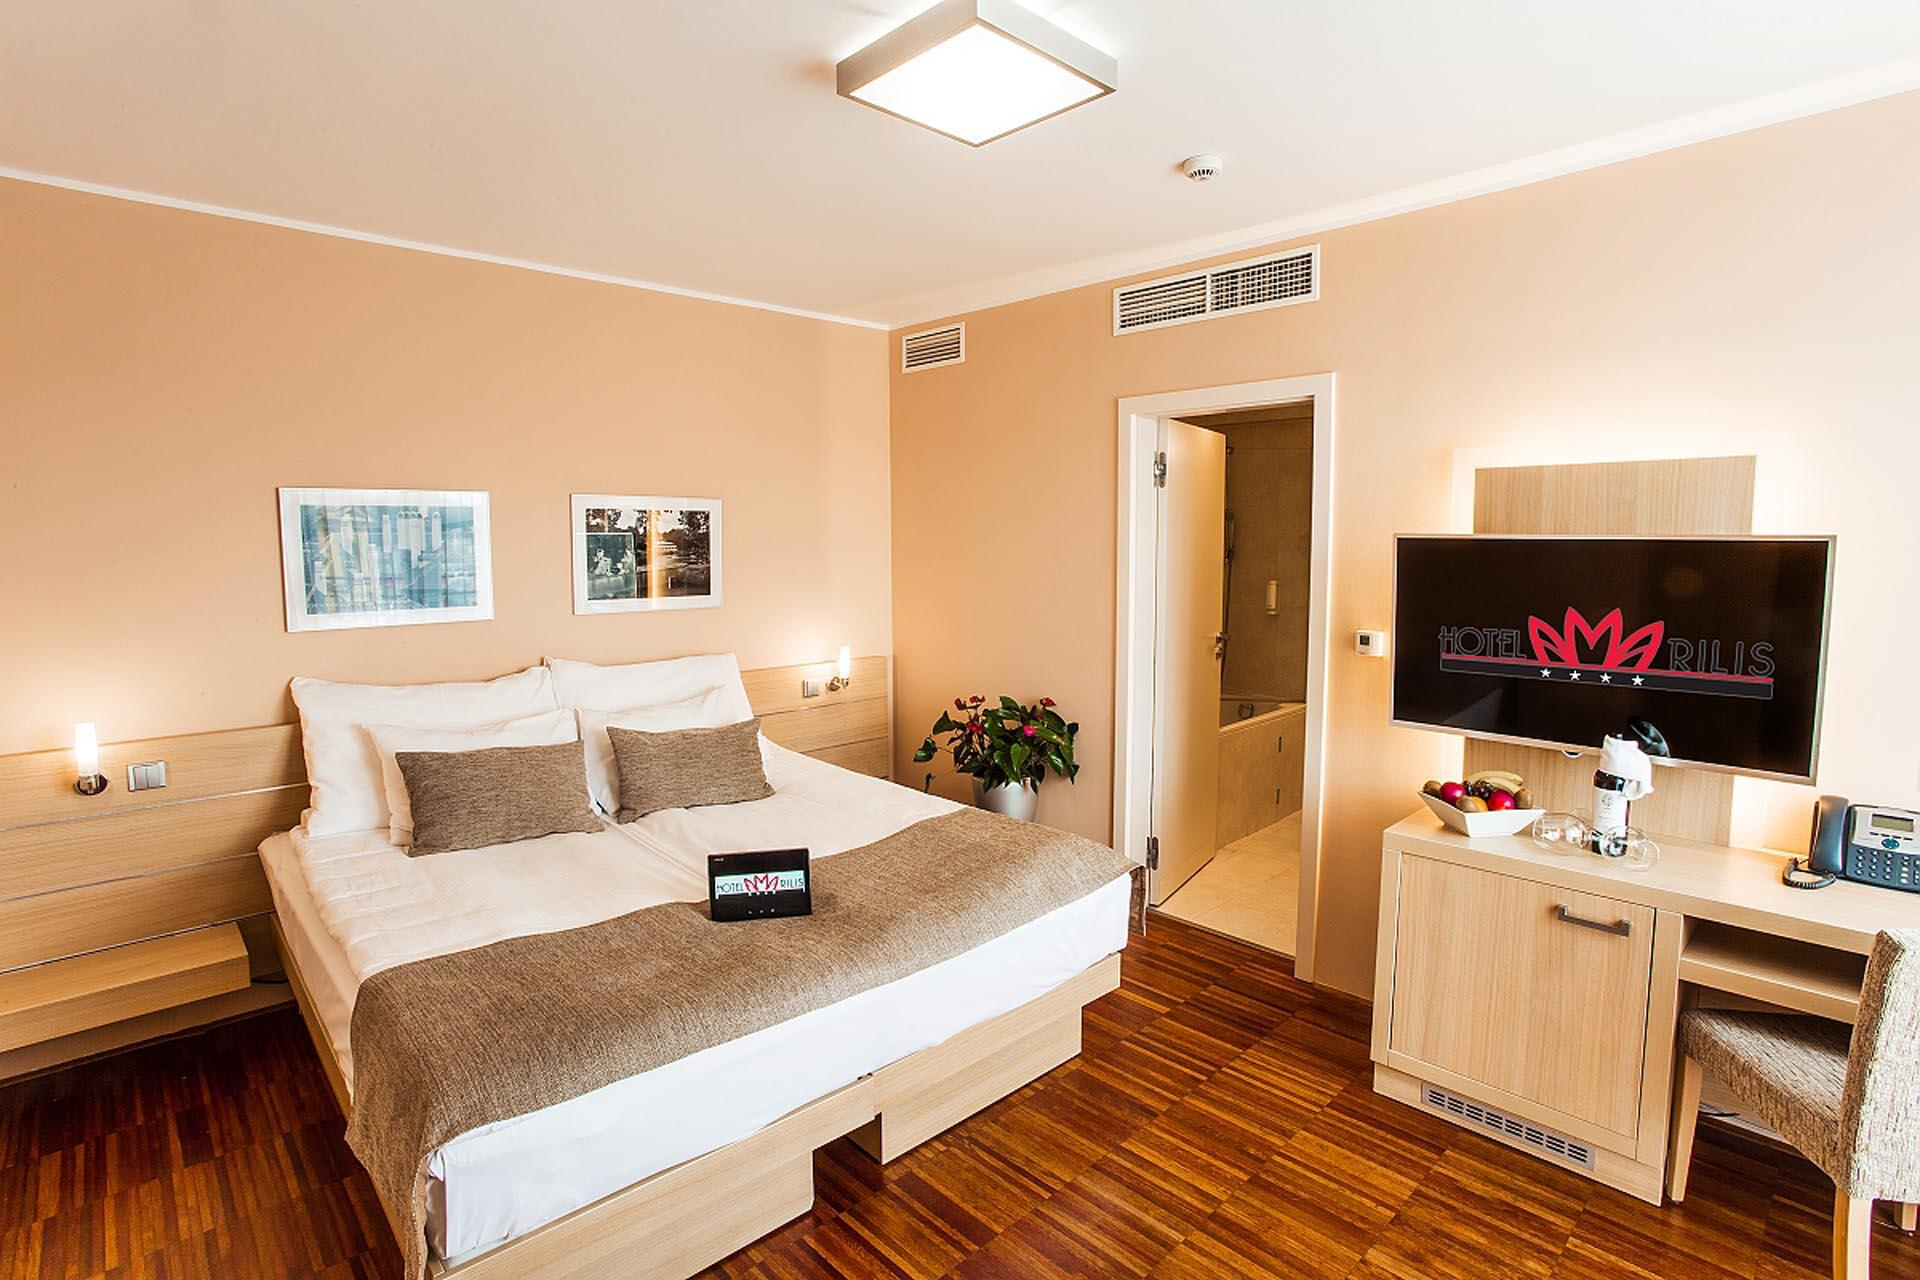 Superior Room with two beds at Hotel Amarilis